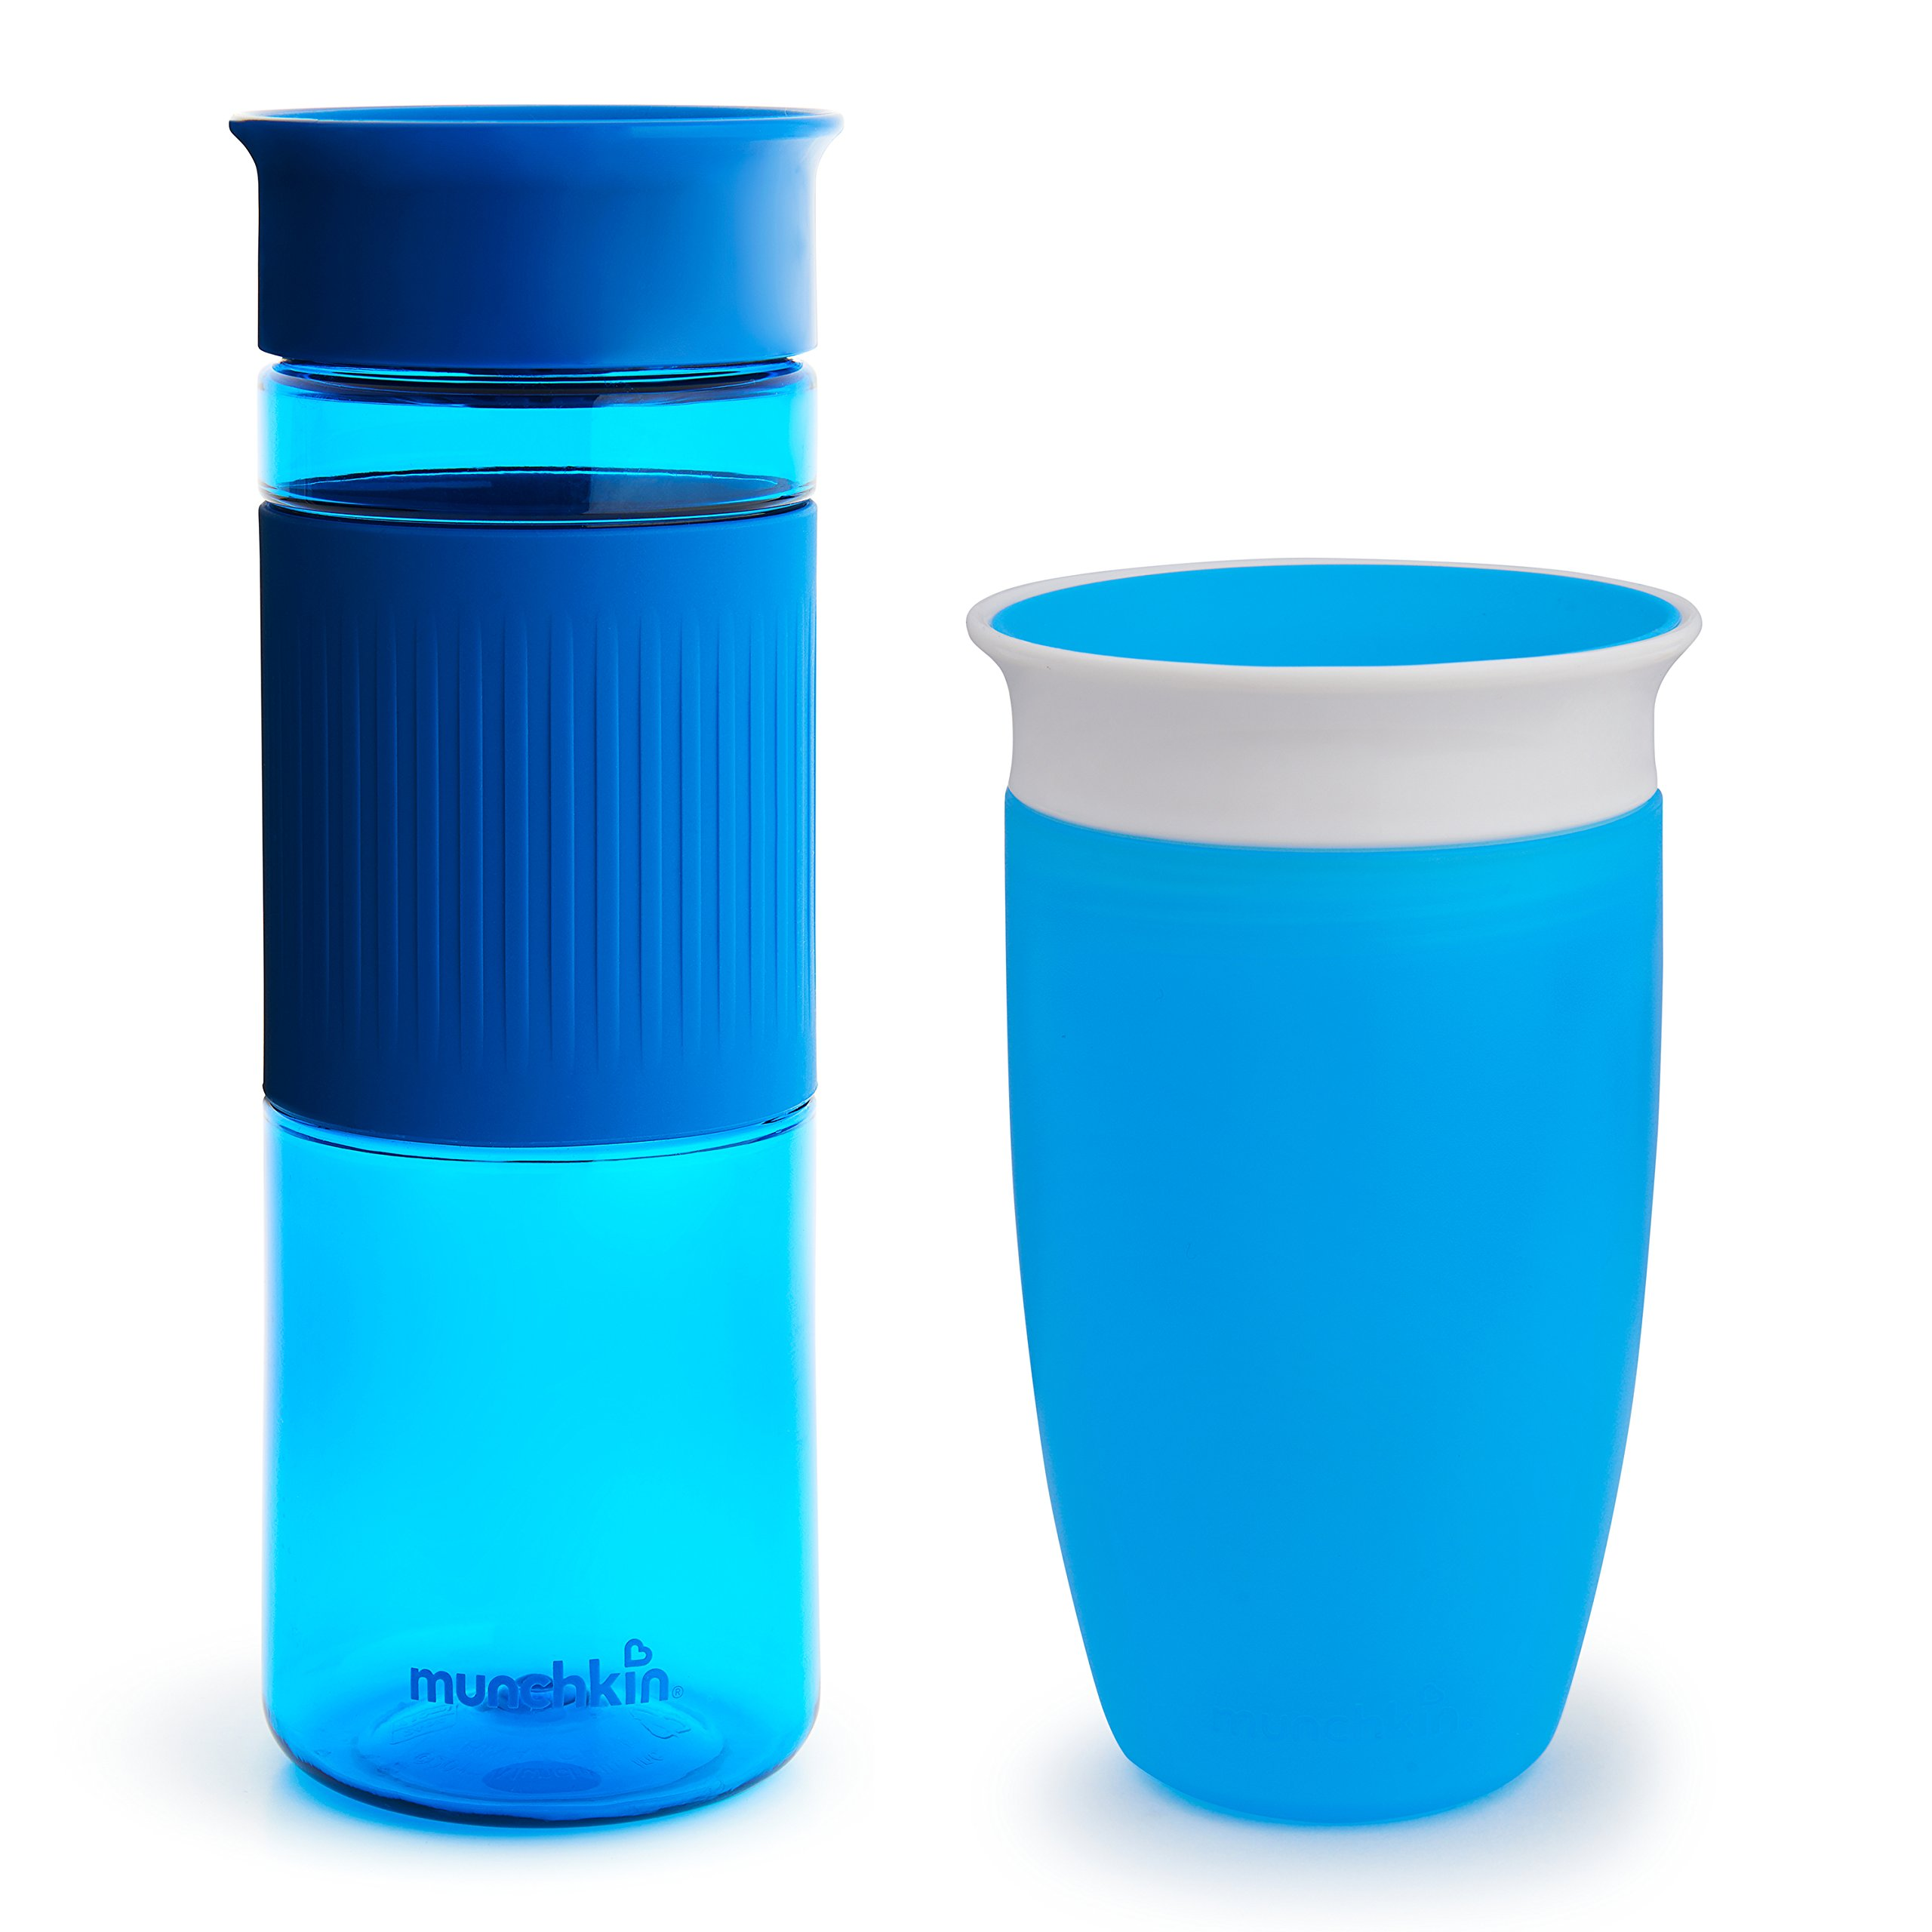 Munchkin Miracle 360 Cup Parent and Kid Set, 24 and 10 Ounce, Blue, Set of 2,Combo Pack by Munchkin